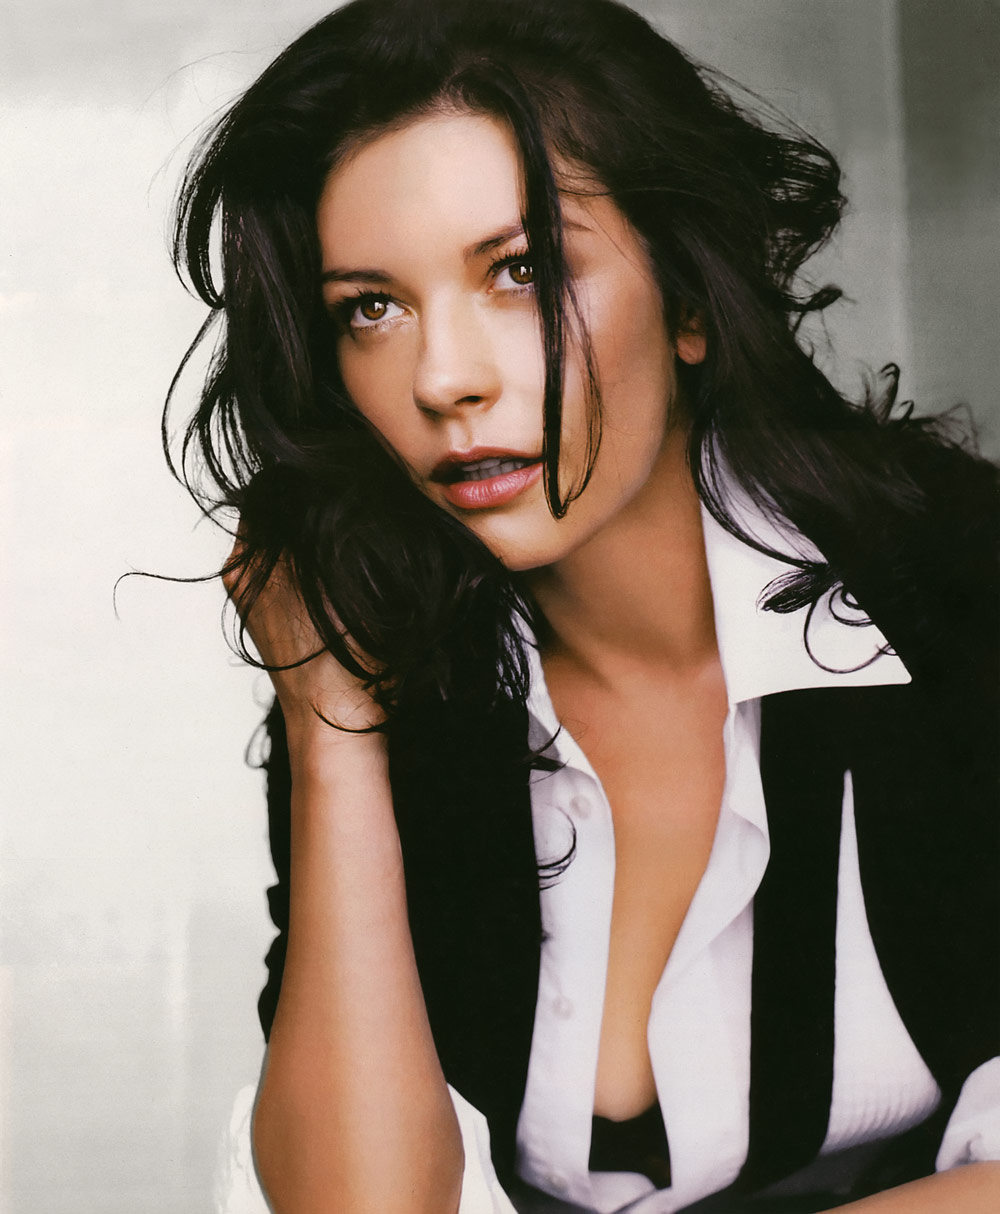 http://images.fanpop.com/images/image_uploads/Catherine-Zeta-Jones-catherine-zeta-jones-83341_1000_1214.jpg